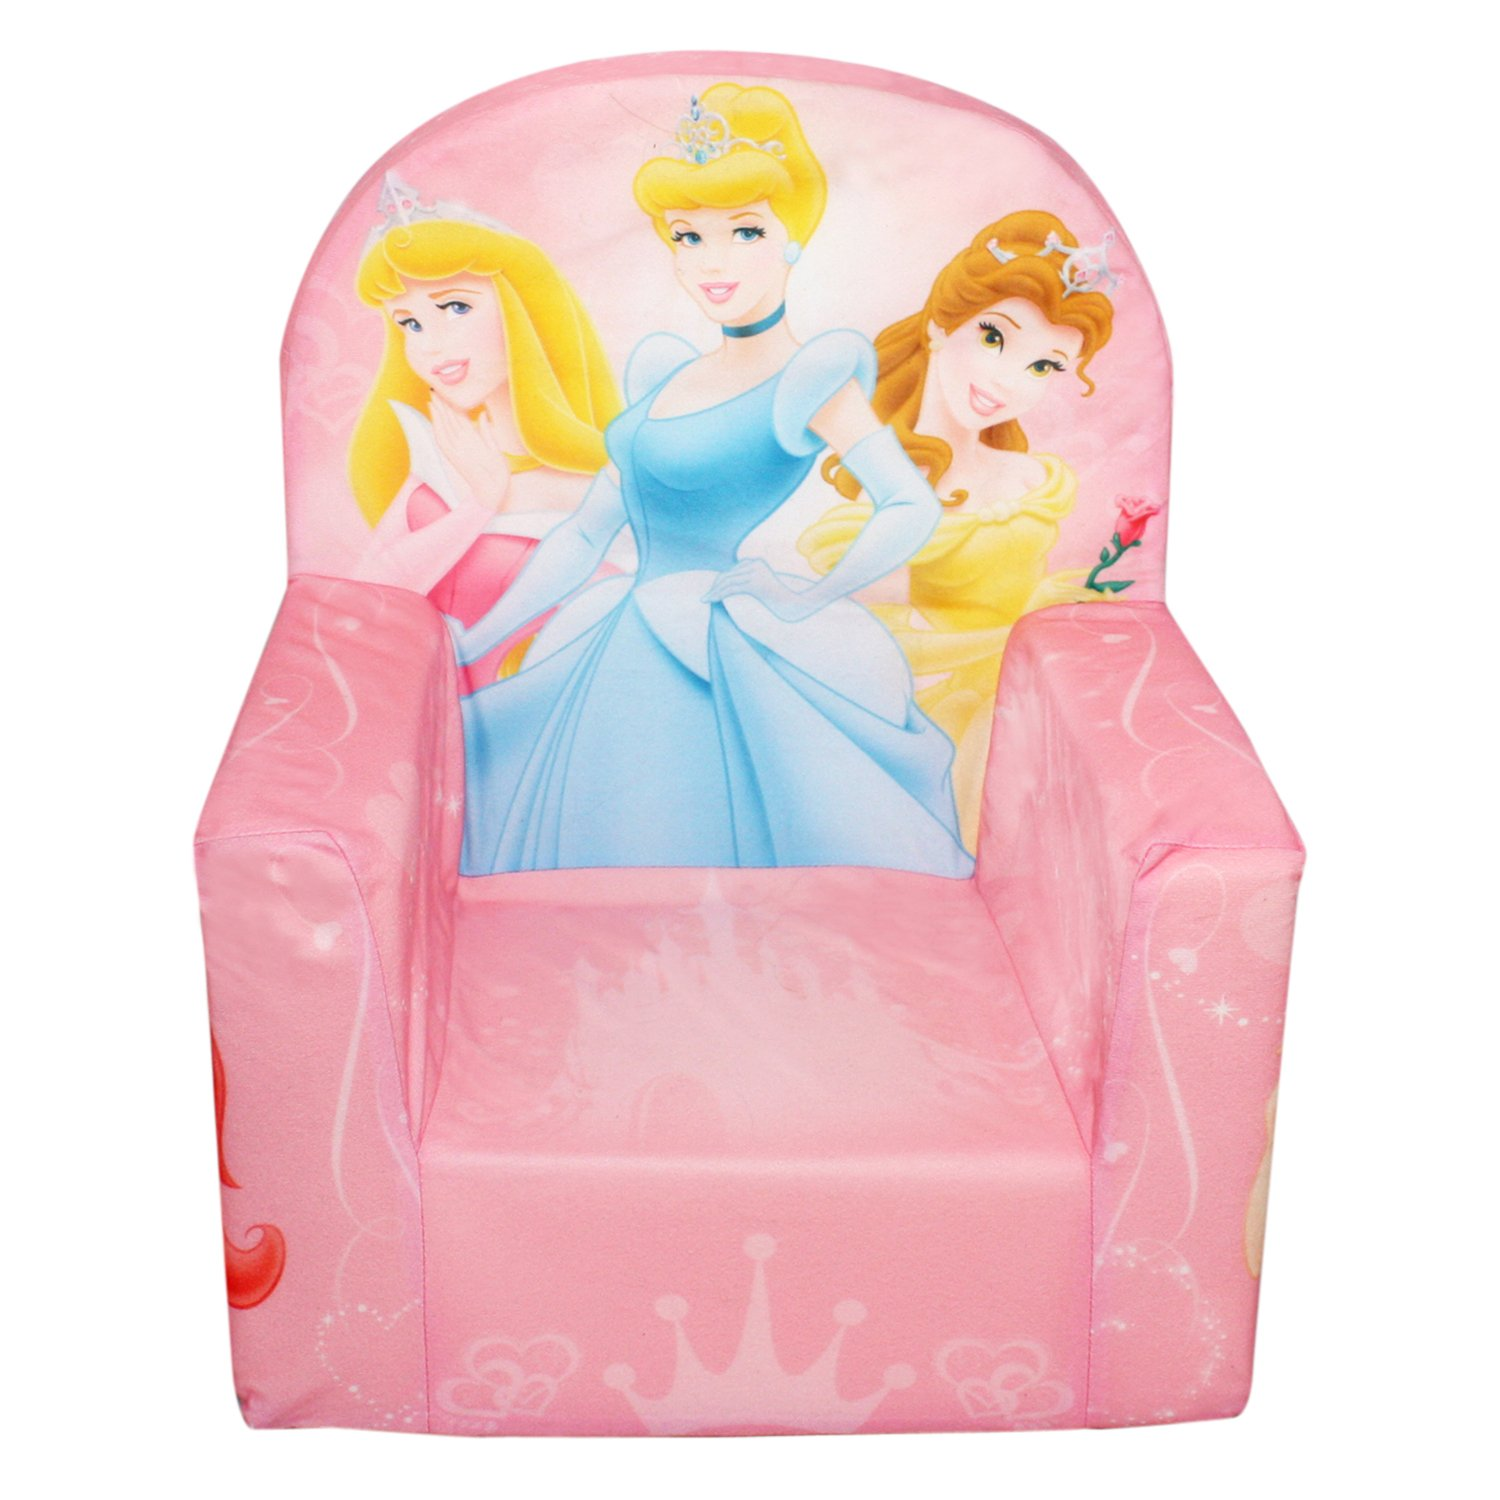 Princess Chairs For Toddlers Disney Princess Theme Bedroom Car Interior Design